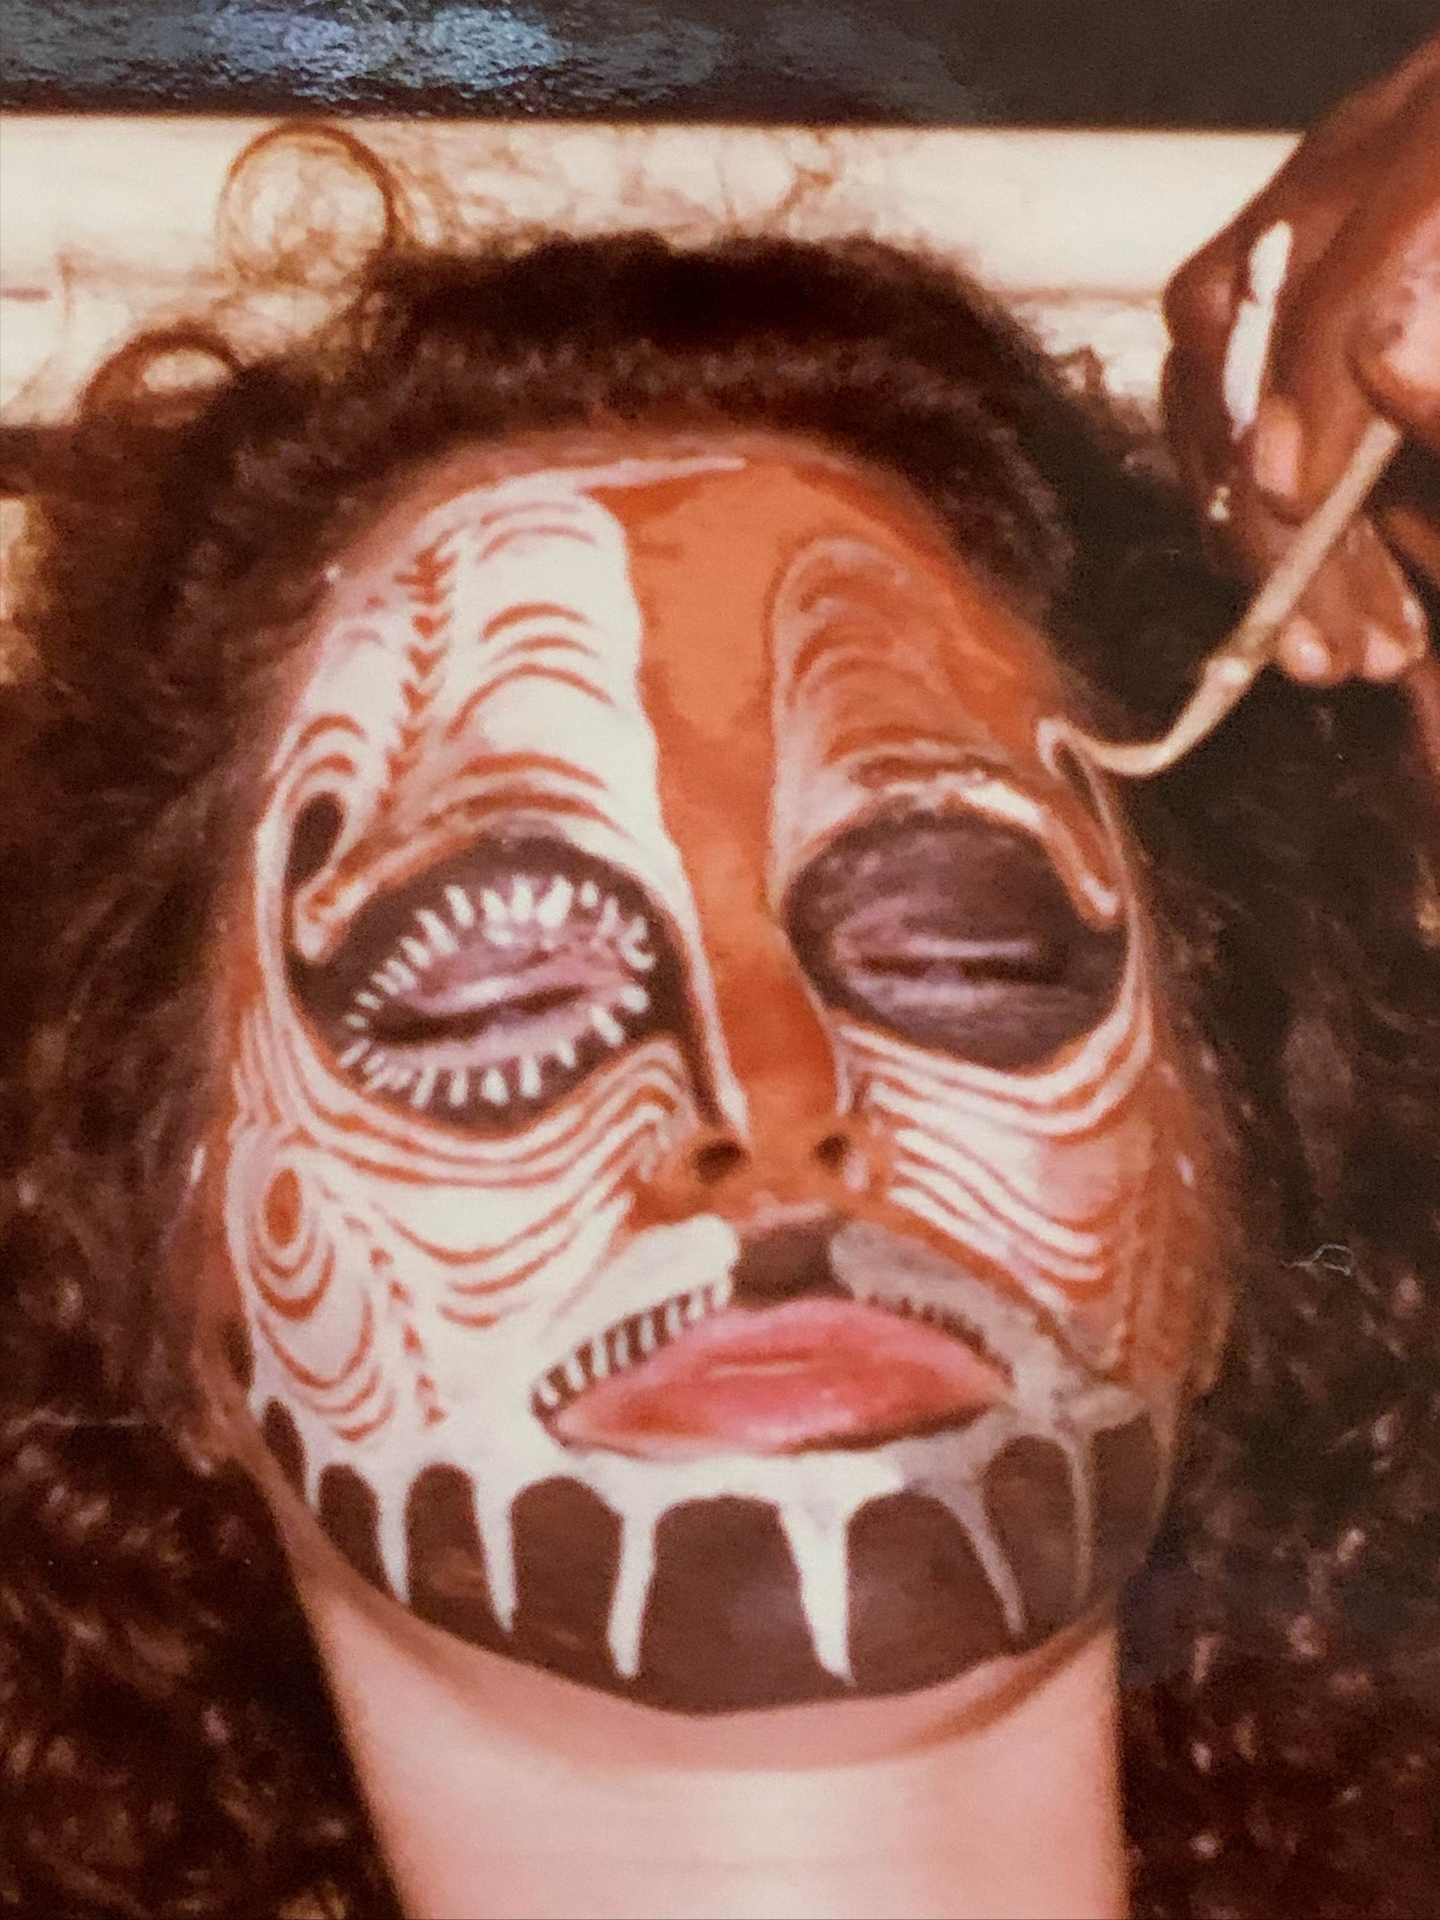 Lisa Novack getting face painted in New Guinea